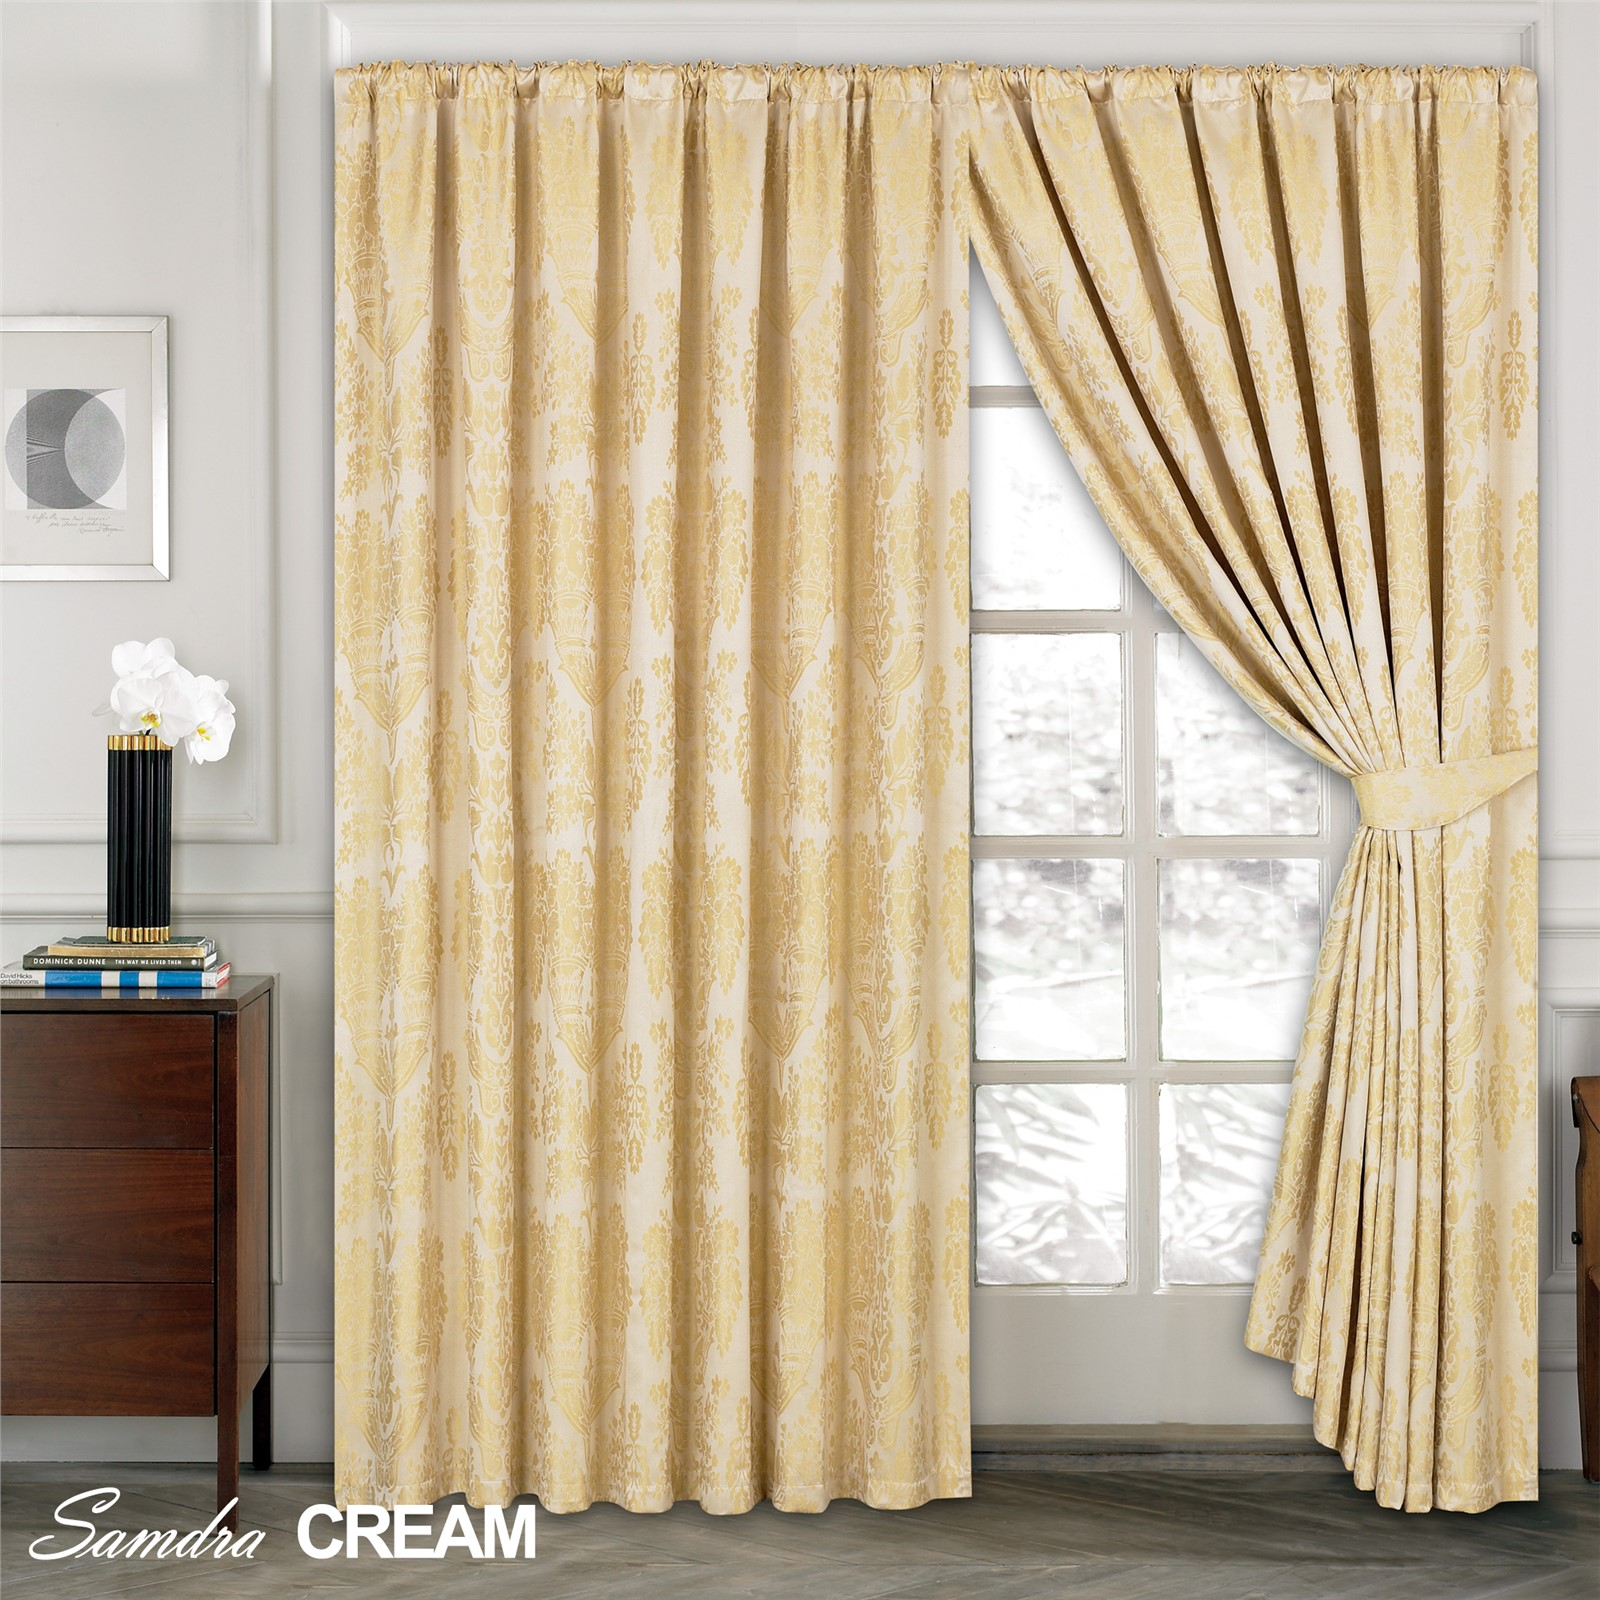 luxury jacquard curtains fully lined ready made tape top pencil pleat curtains ebay. Black Bedroom Furniture Sets. Home Design Ideas